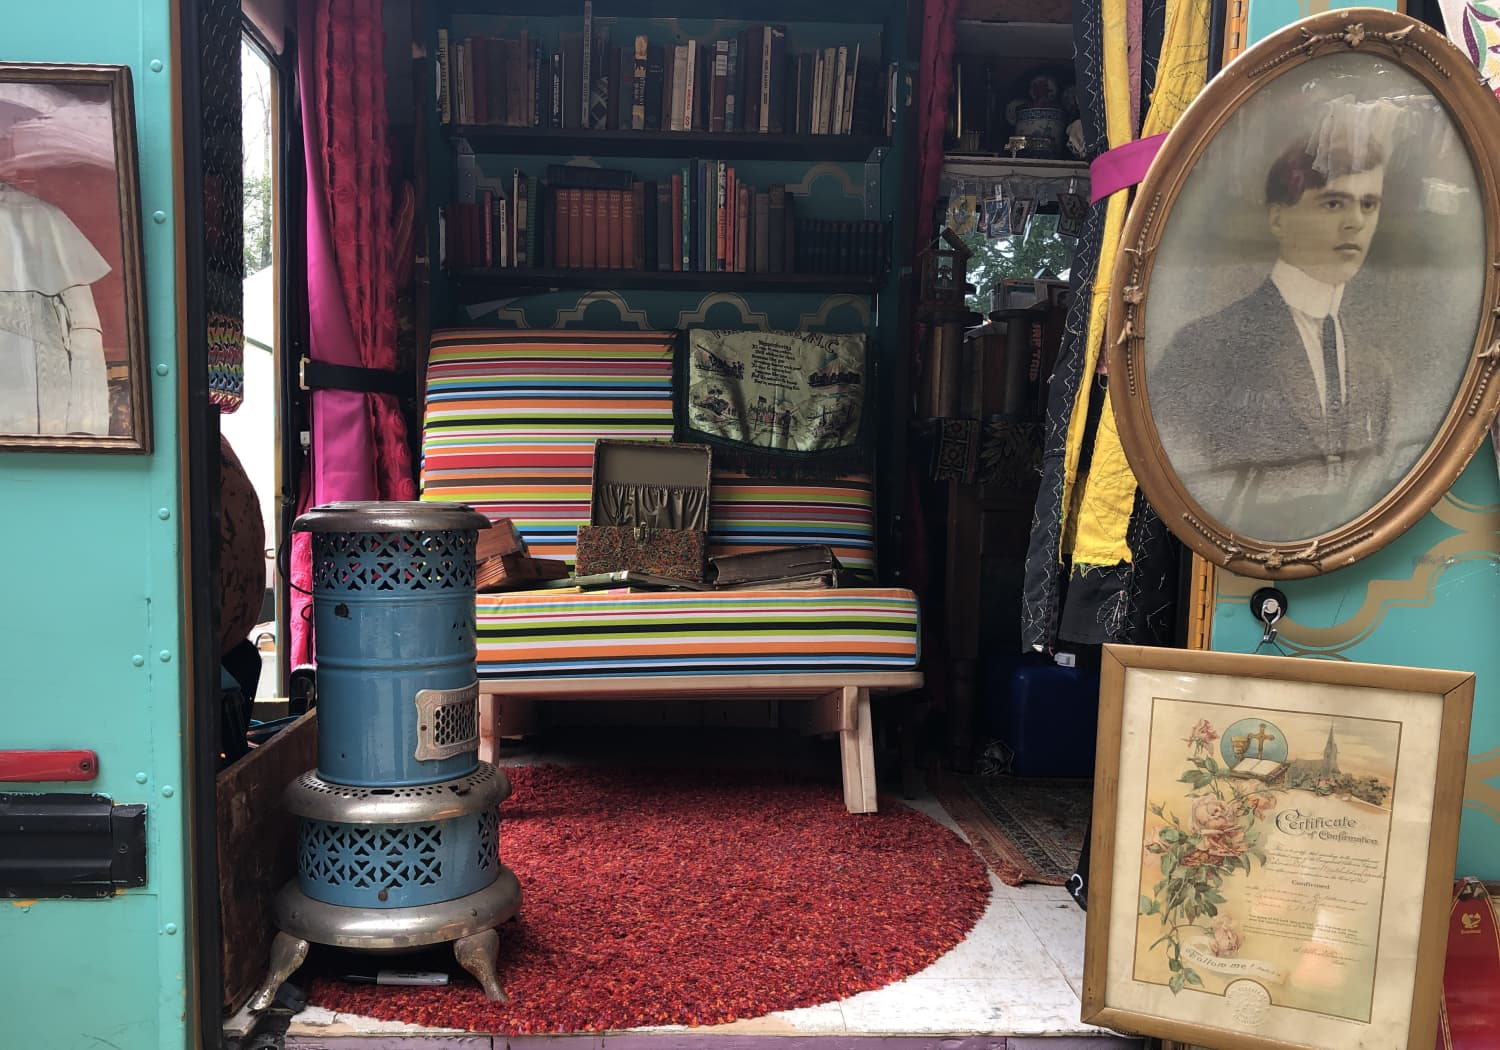 This Maximalist Minibus Might be the Most Colorful Tiny Home on Wheels